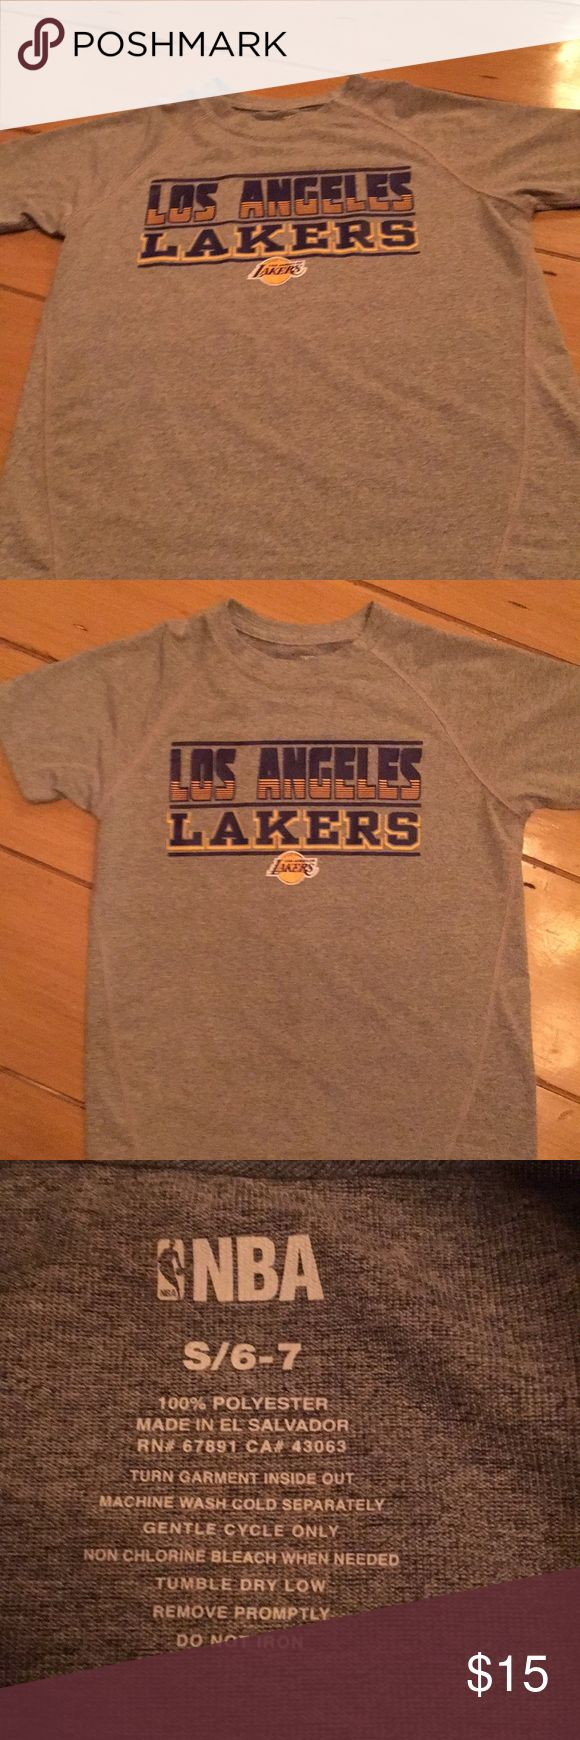 Los Angeles Lakers T-shirt This is a new without tags NBA  Los Angeles Lakers T-shirt made out of 100 % polyester. It is a very soft T-shirt. It is a size 6 –7/small and is gray. The threading that you can see in the picture shows that is a higher quality than a basic cheap T-shirt. Look at my other items for possible bundling NBA Shirts & Tops Tees - Short Sleeve